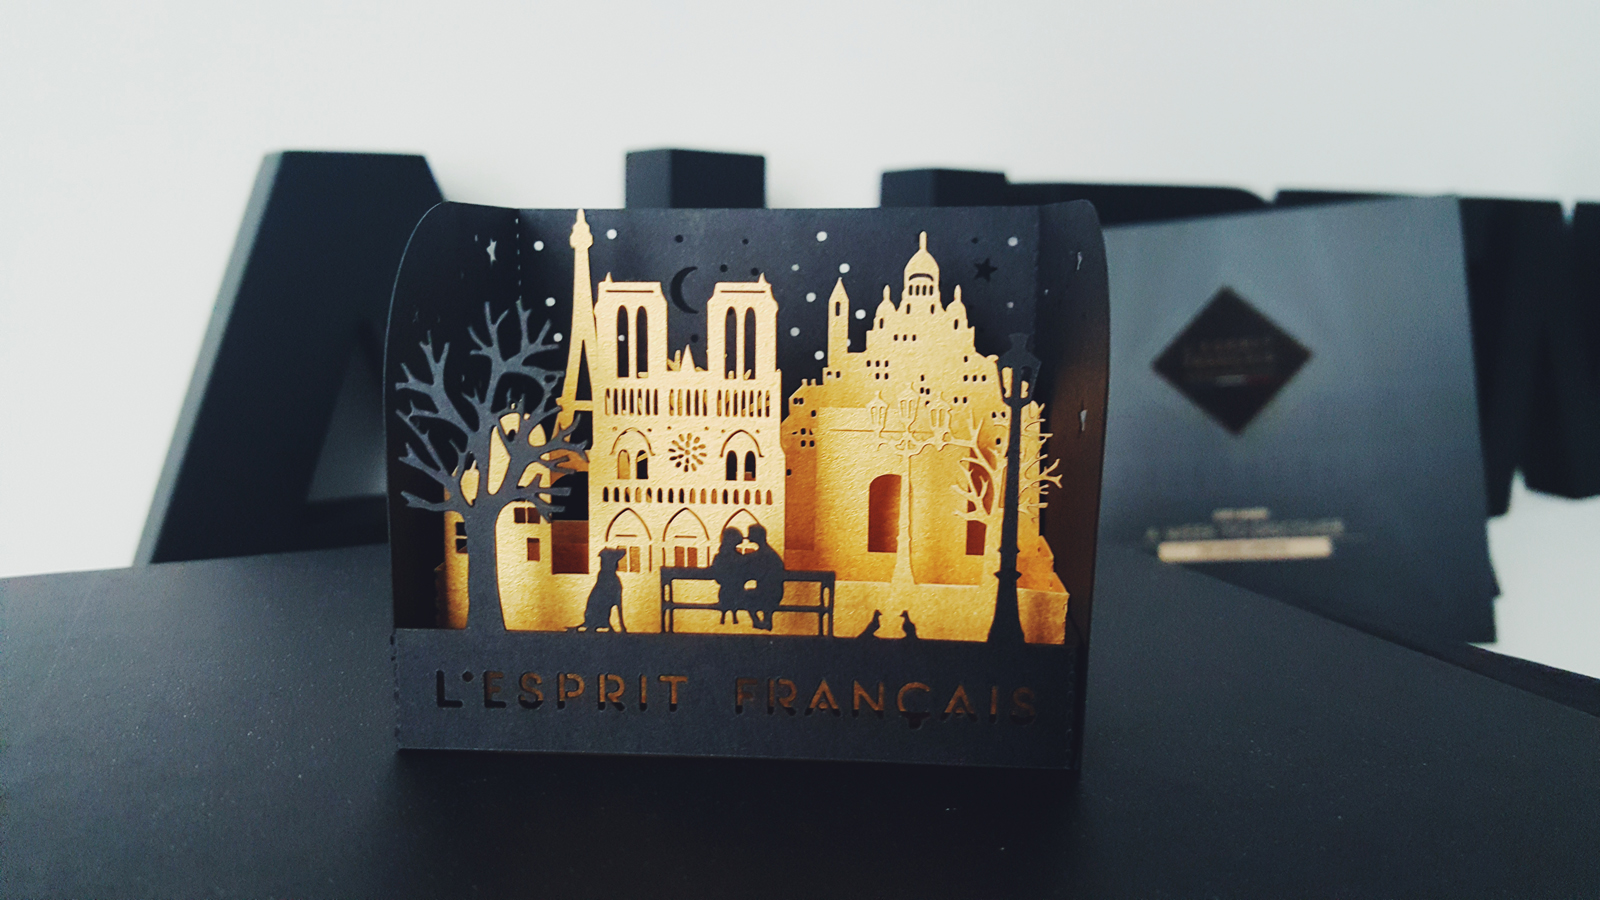 Coffret L esprit francais gift box collection Paris Pop Card carte postale french style the best way experience the parisian lifestyle eiffel tower lovers Notre Dame photo usofparis blog